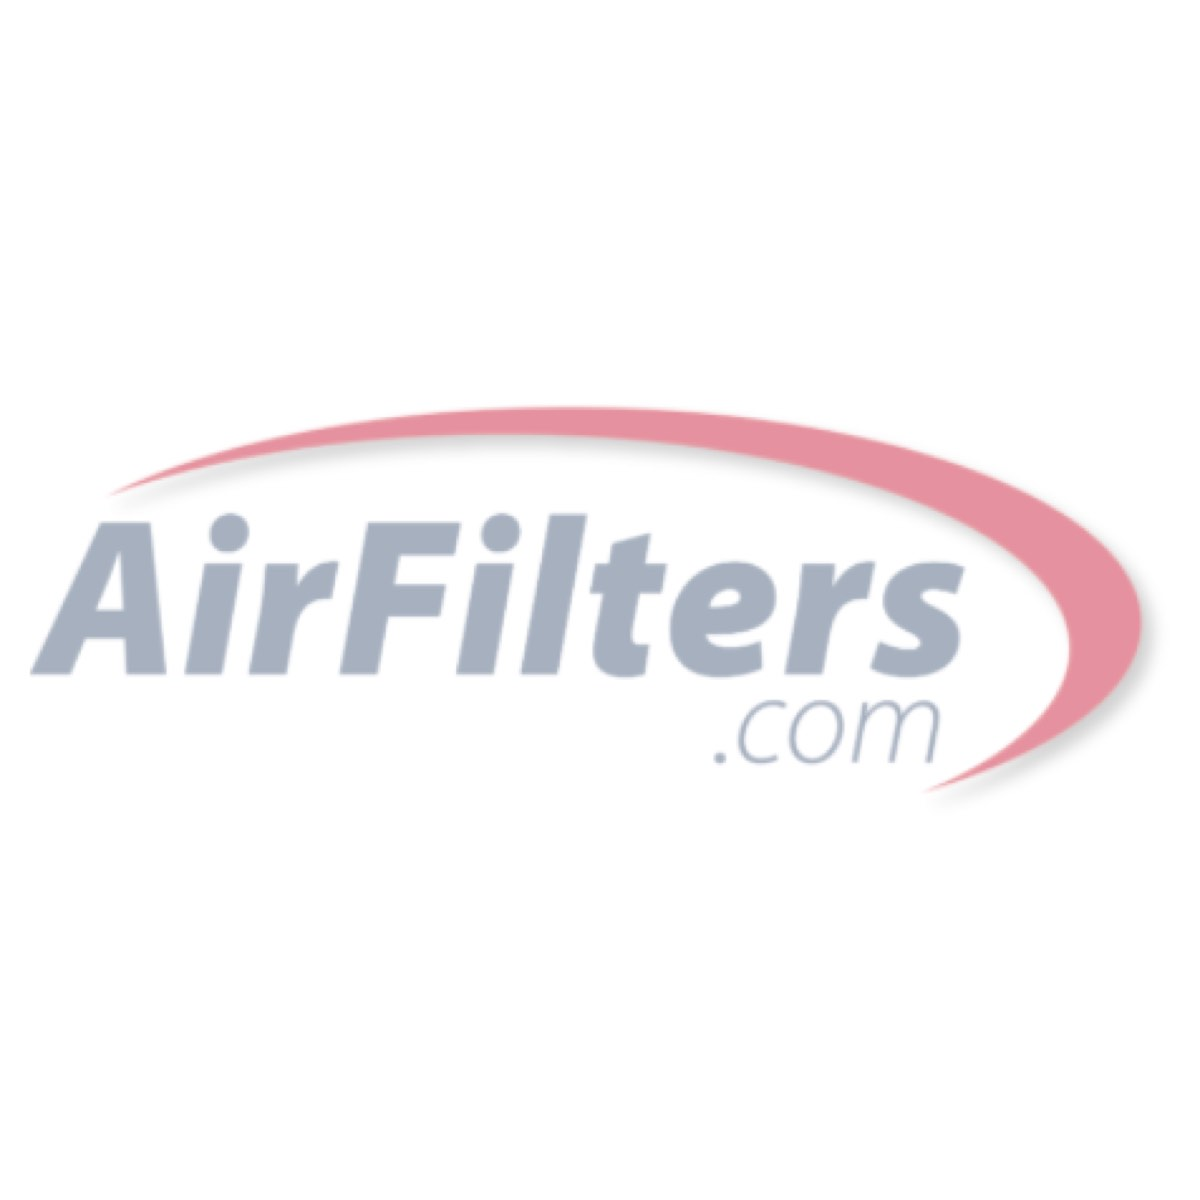 2229 Sears/Kenmore Air Cleaner Multi-stage Replacement Filter